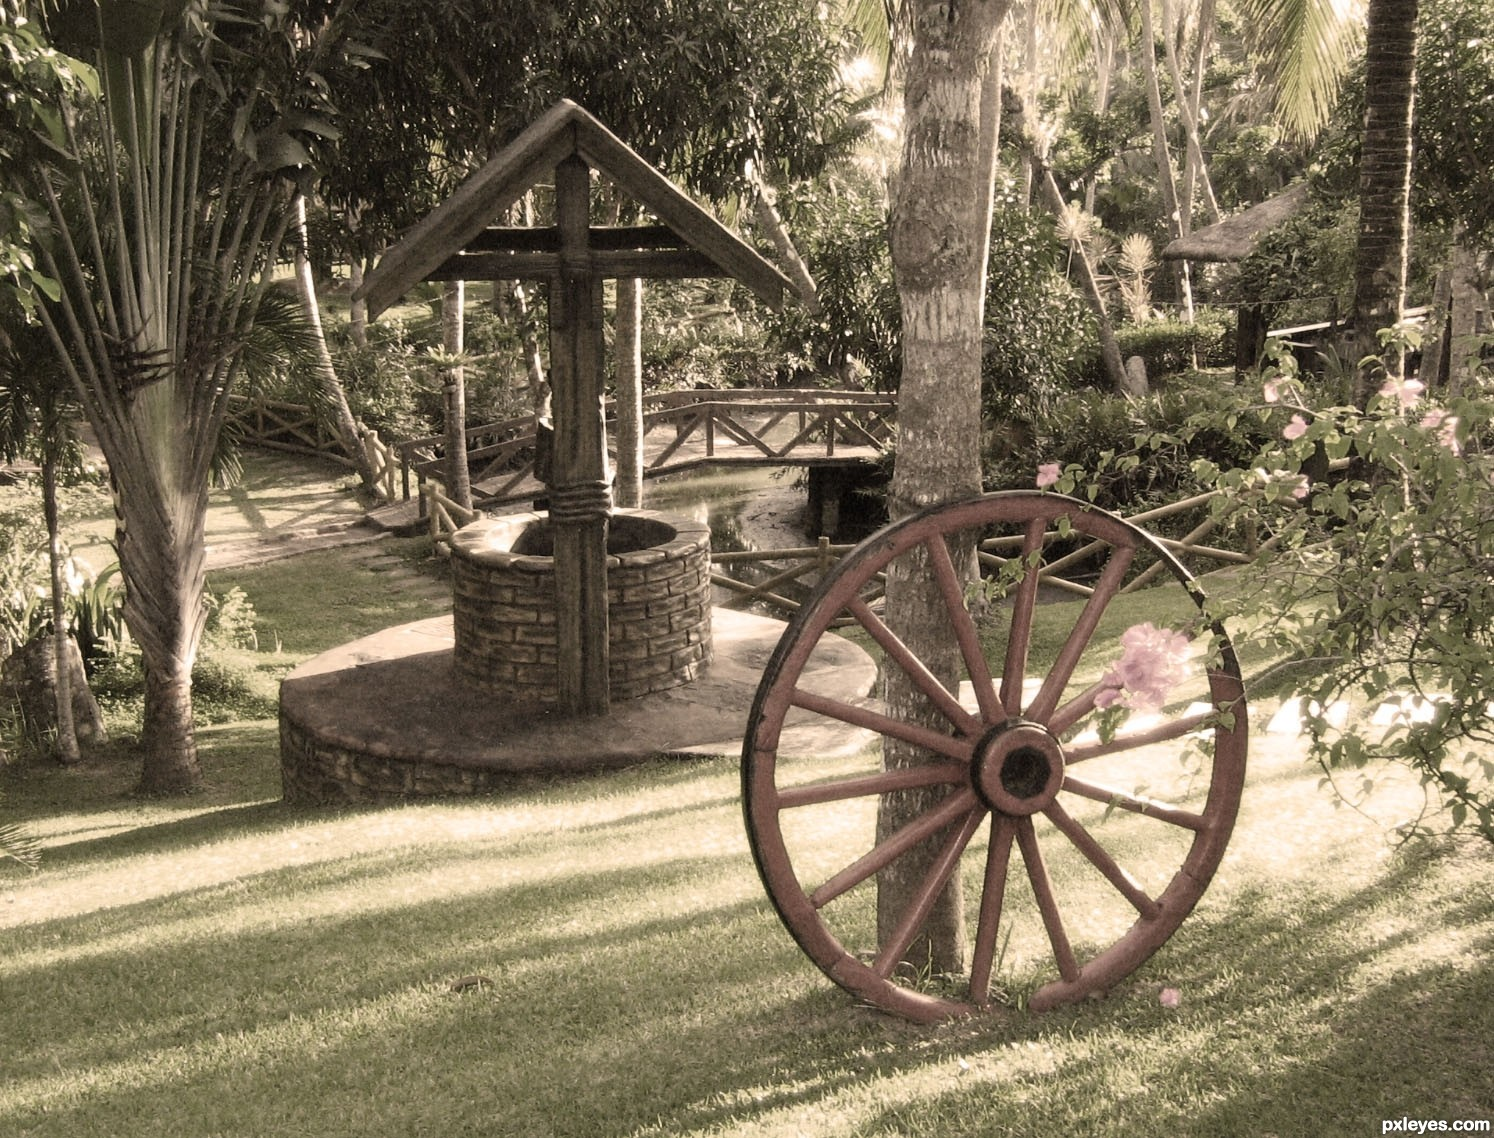 make a wish picture, by Karol for: garden ornaments photography ...